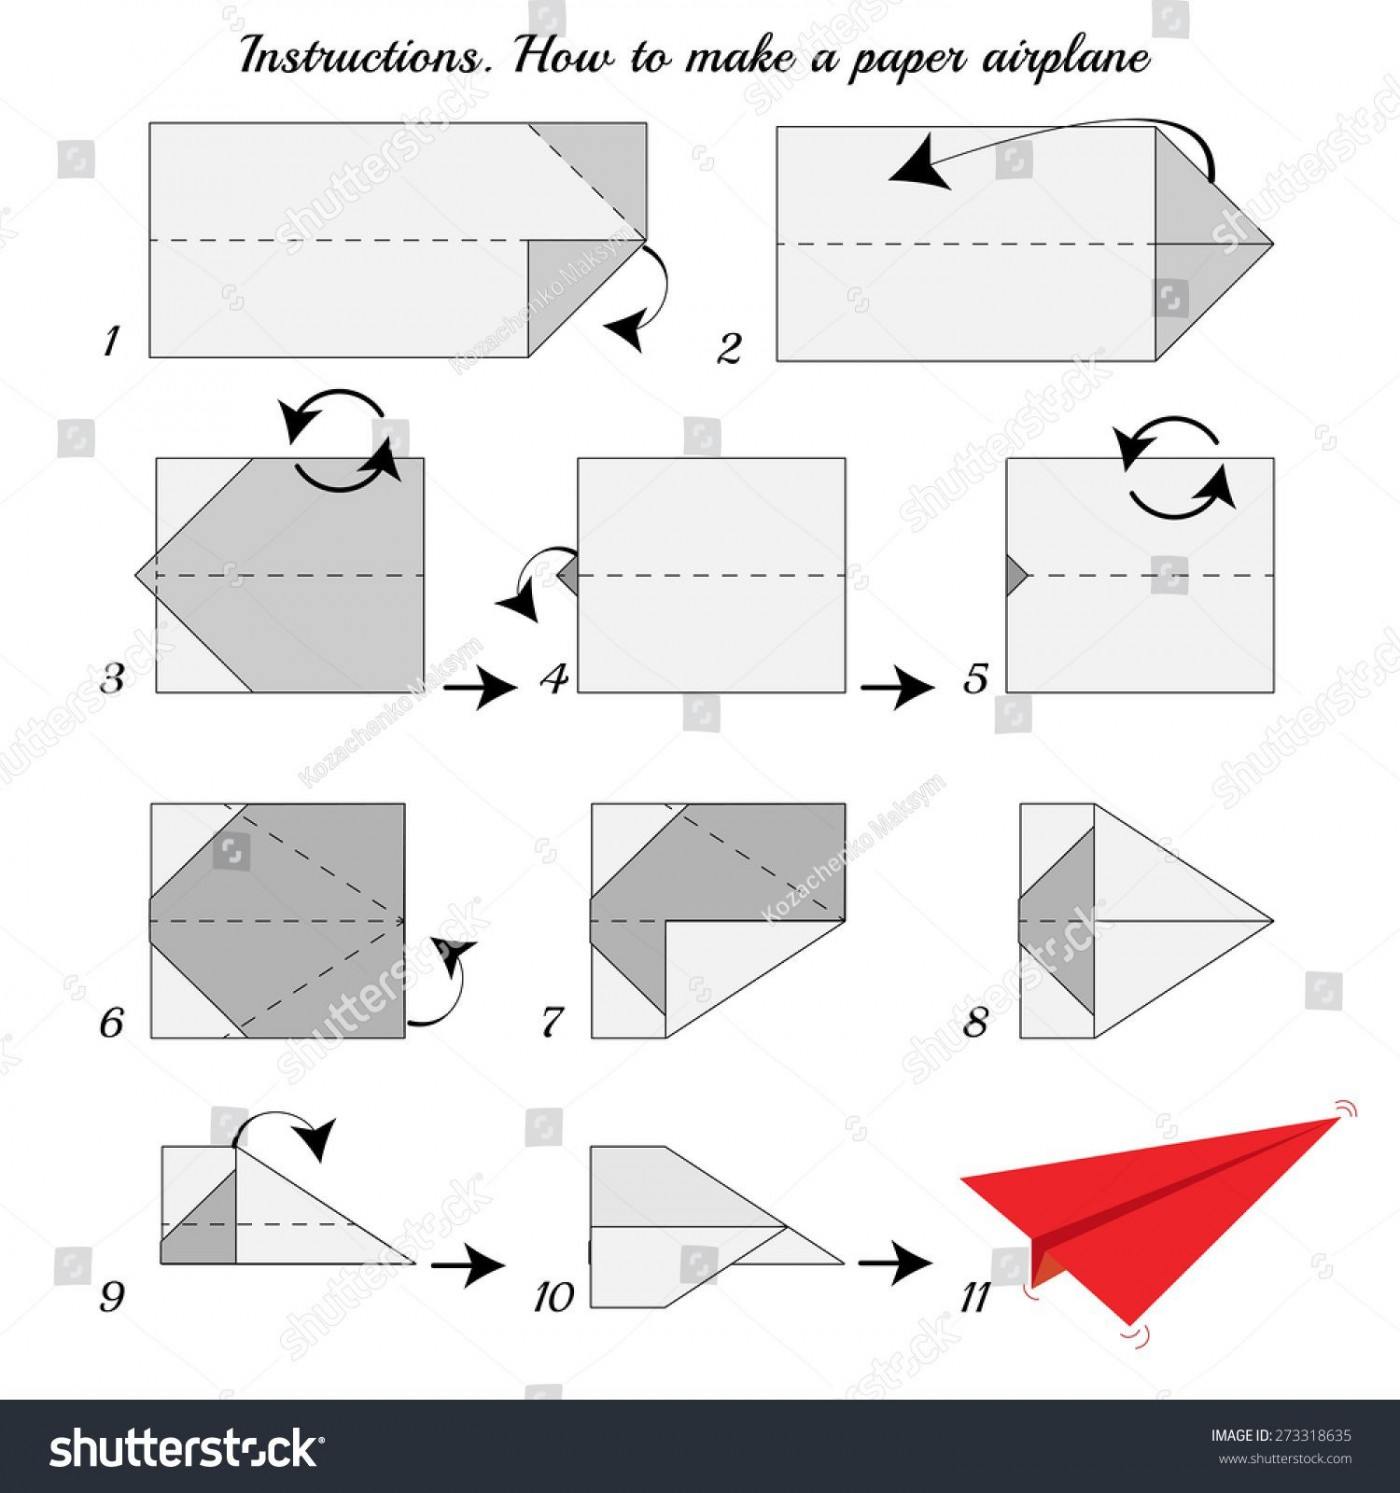 008 Fascinating Printable Simple Paper Airplane Instruction High Resolution  Plane1400